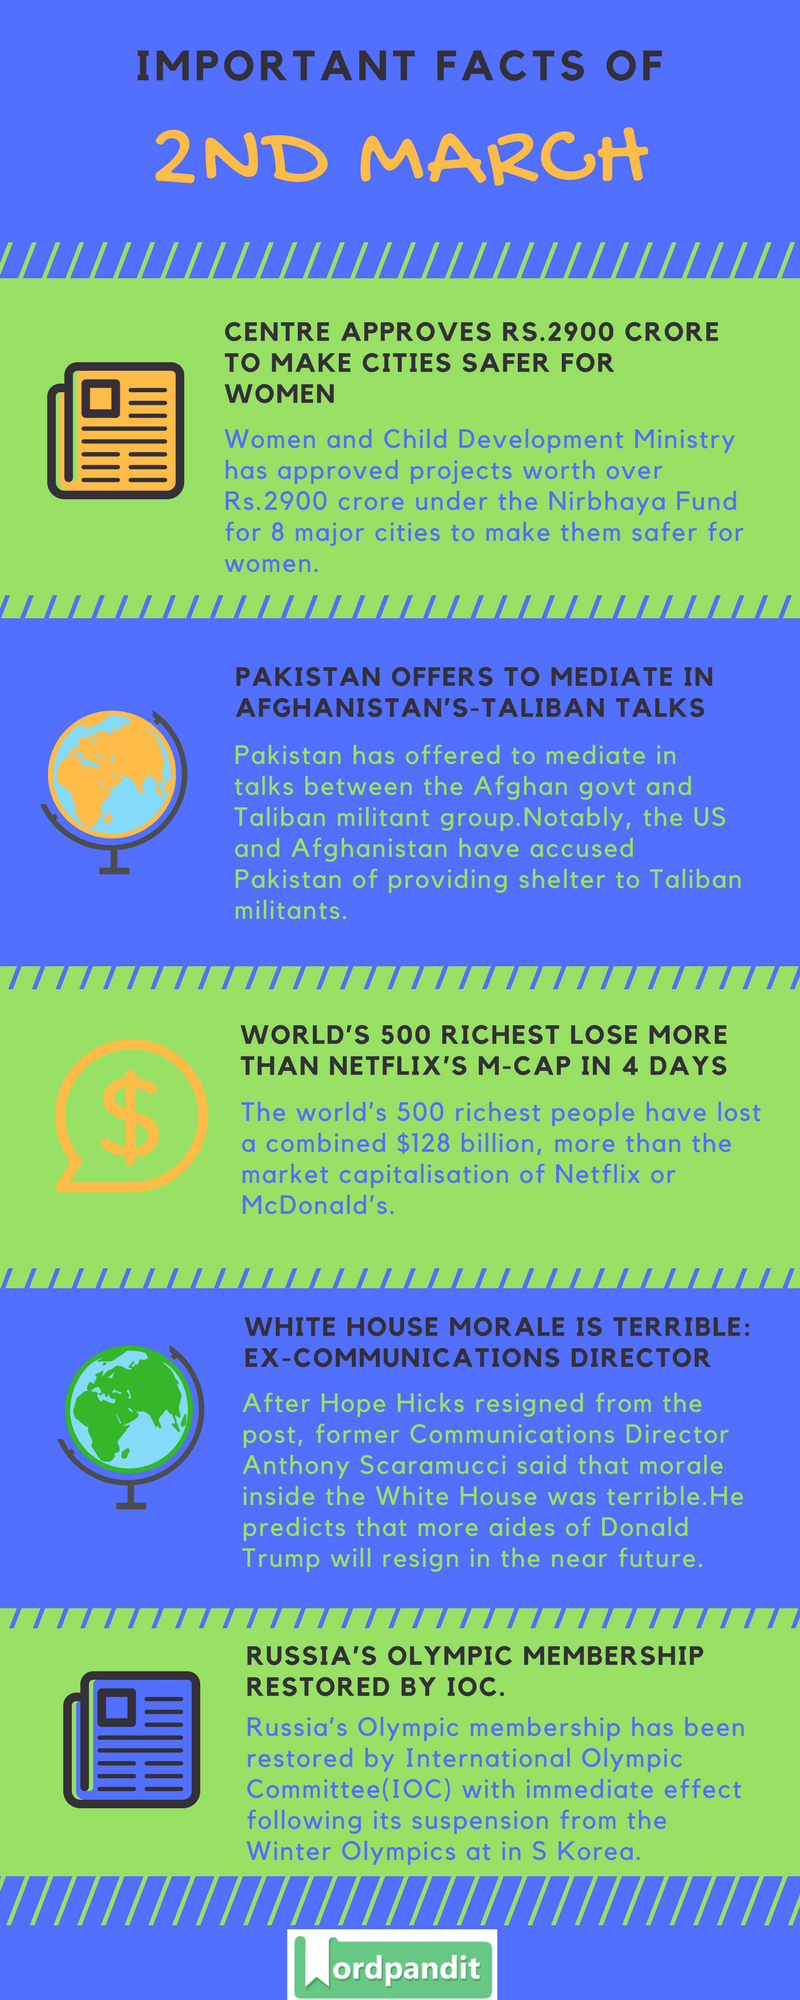 Daily Current Affairs 2 March 2018 Current Affairs Quiz March 2 2018 Current Affairs Infographic